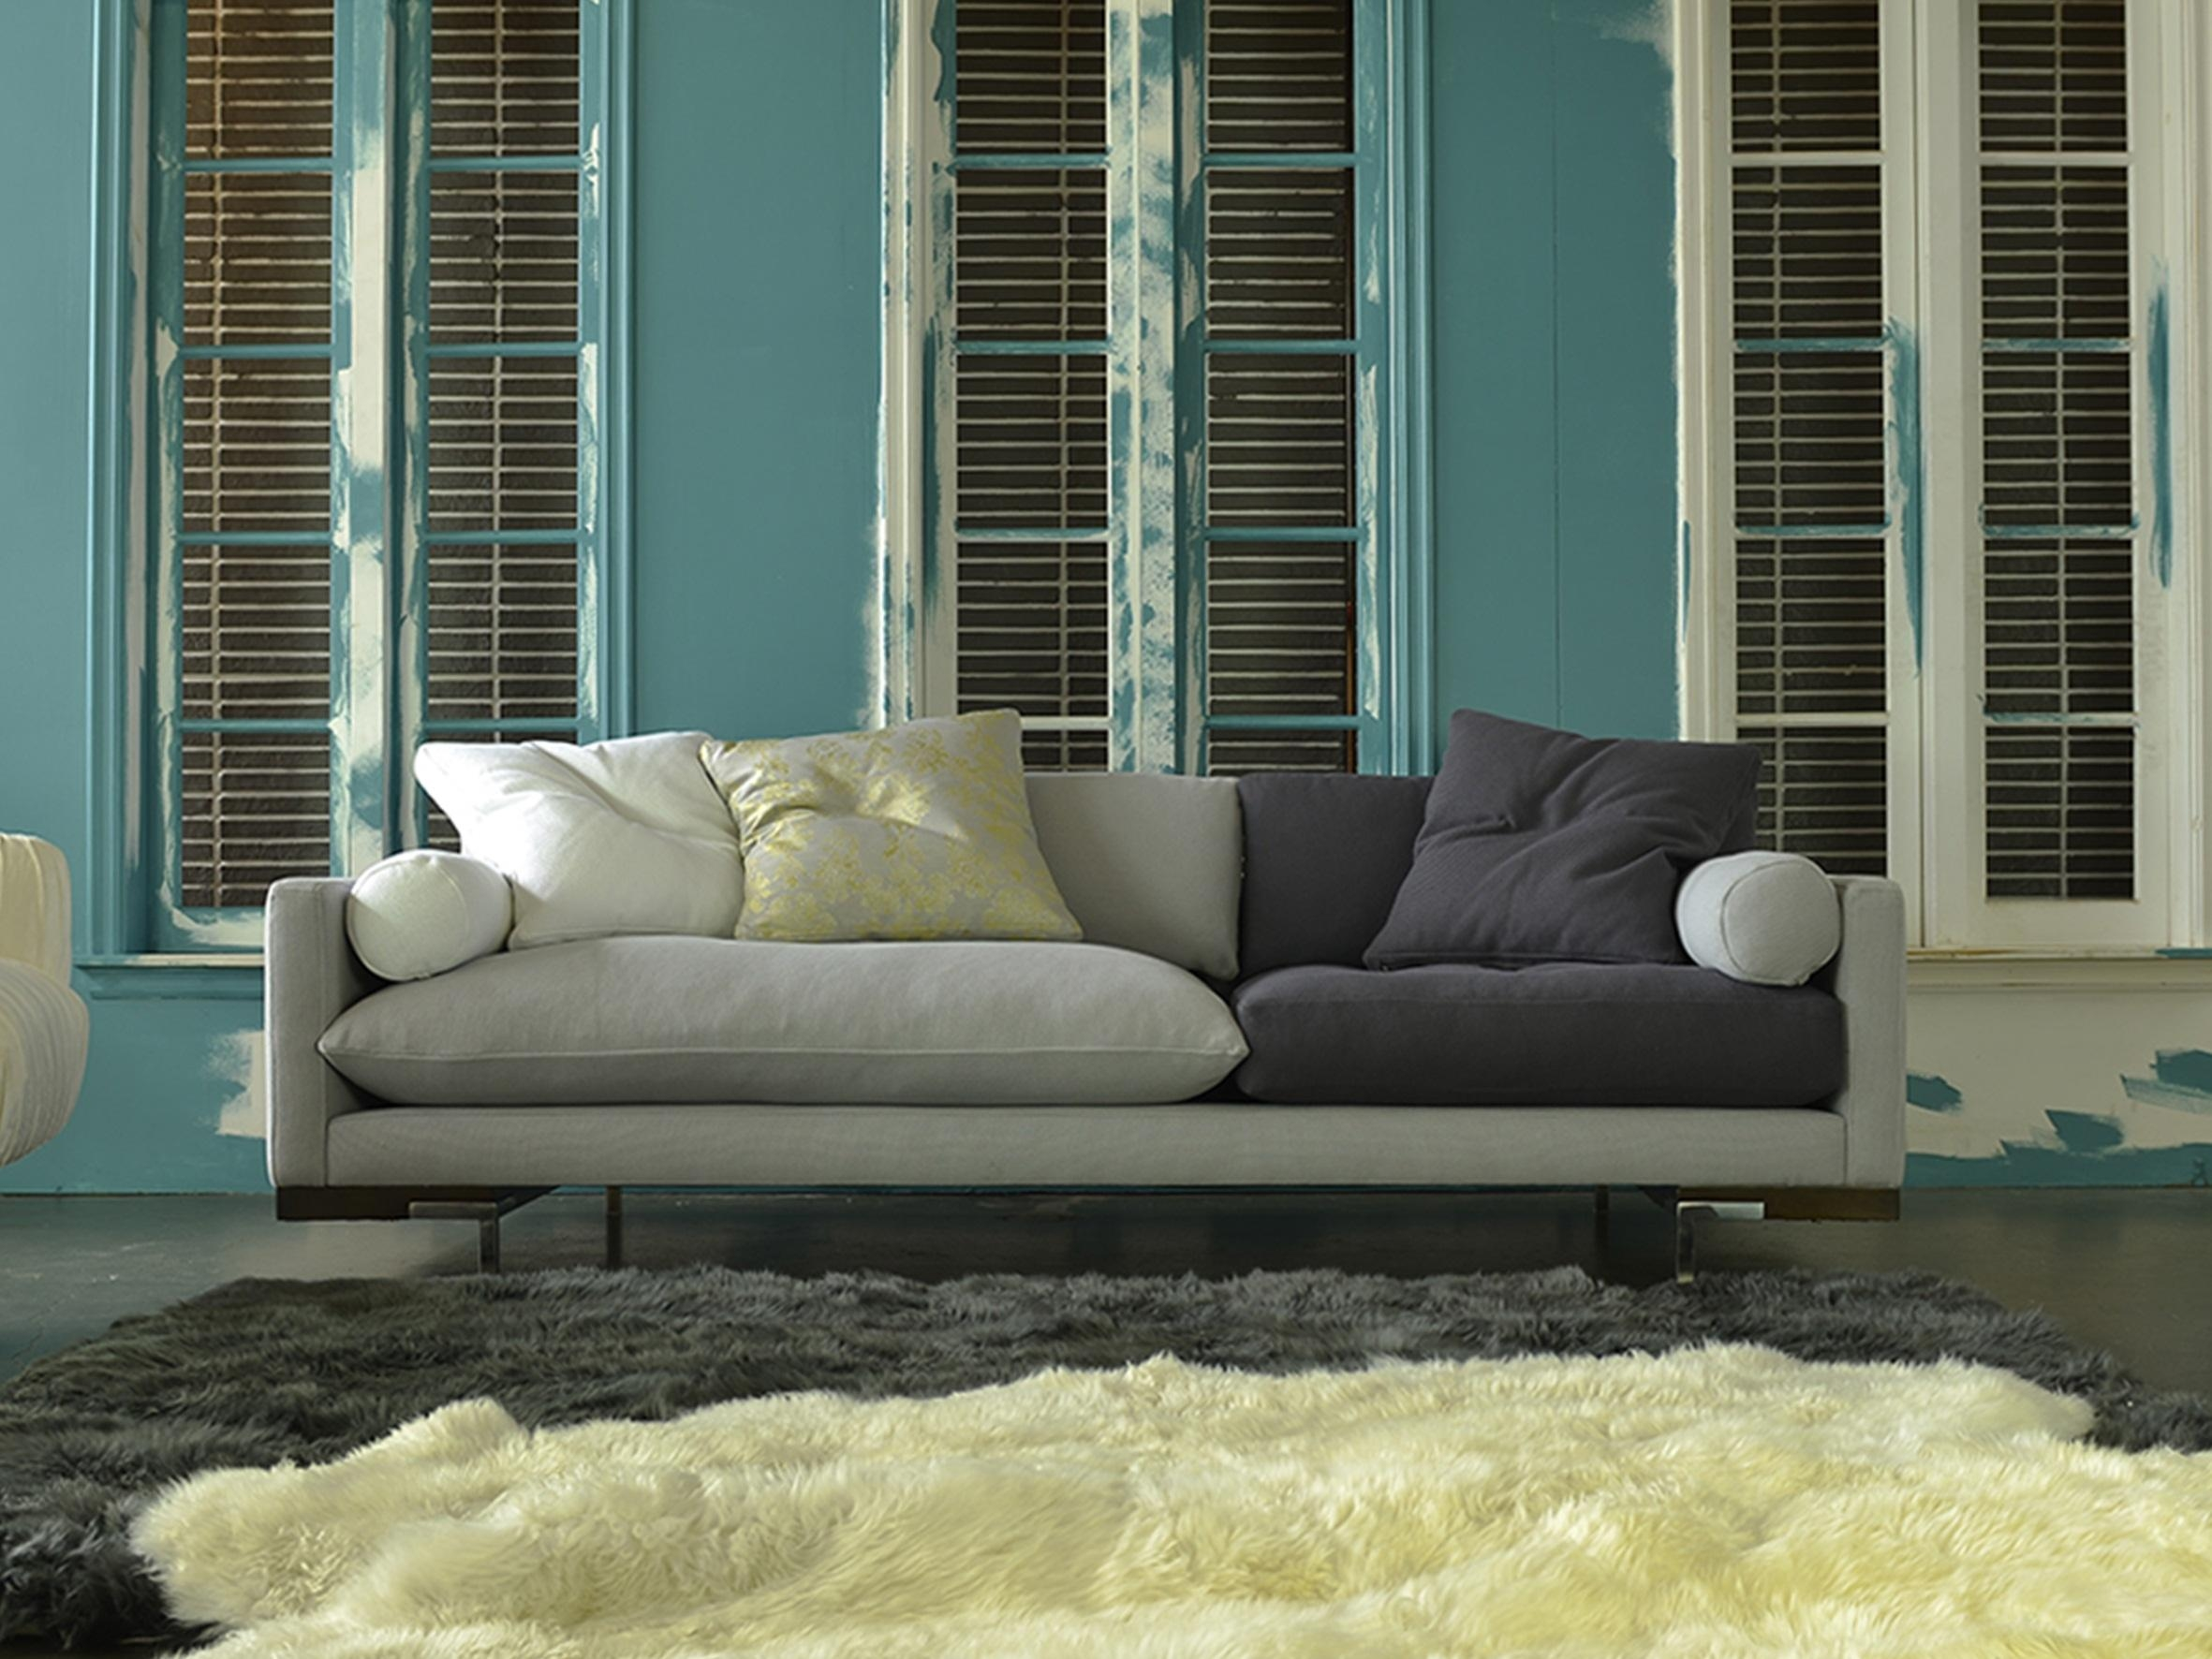 Nathan Anthony Sofa | Best Sofas Ideas – Sofascouch With Regard To Nathan Anthony Sofas (Image 13 of 20)